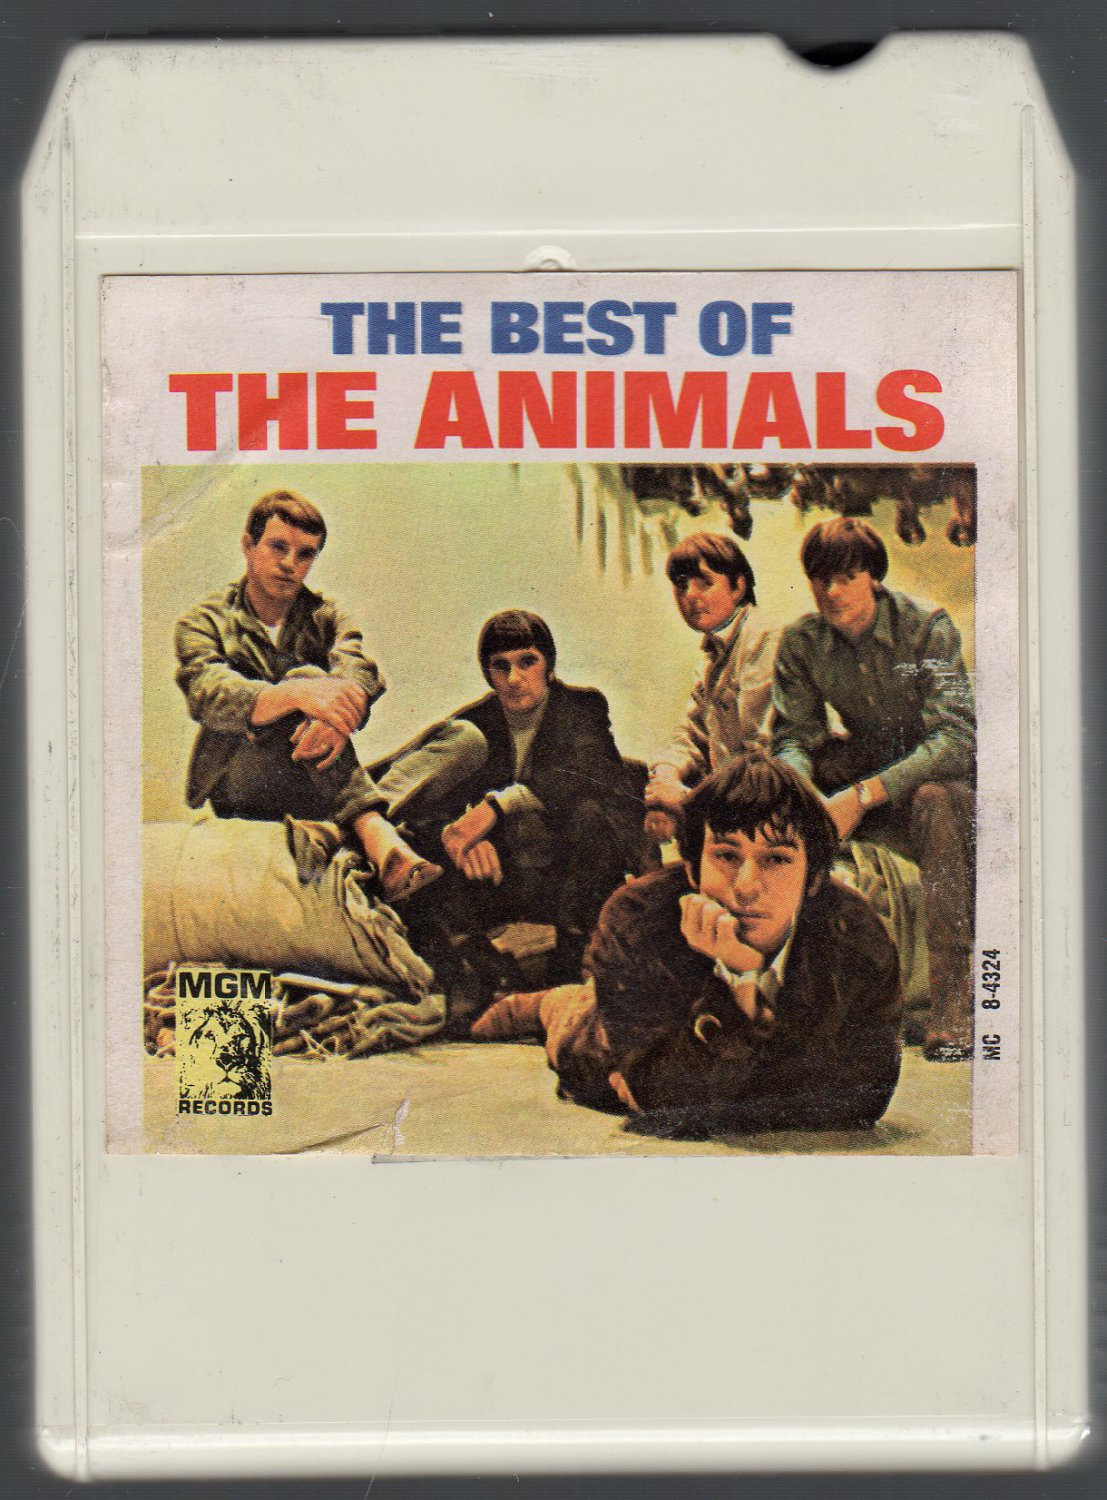 The Animals - The Best Of The Animals SOLD 1966 MGM Ampex Lear 8-track tape